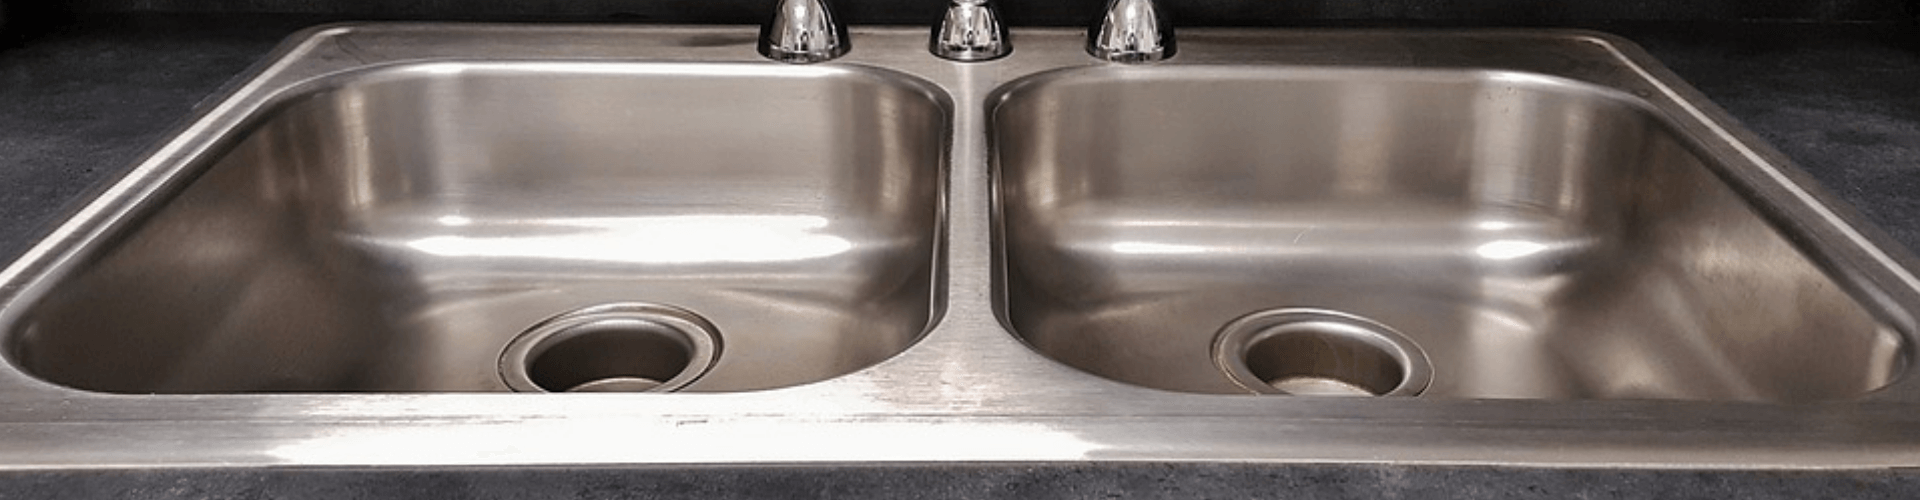 3 things you need to know about blocked drains